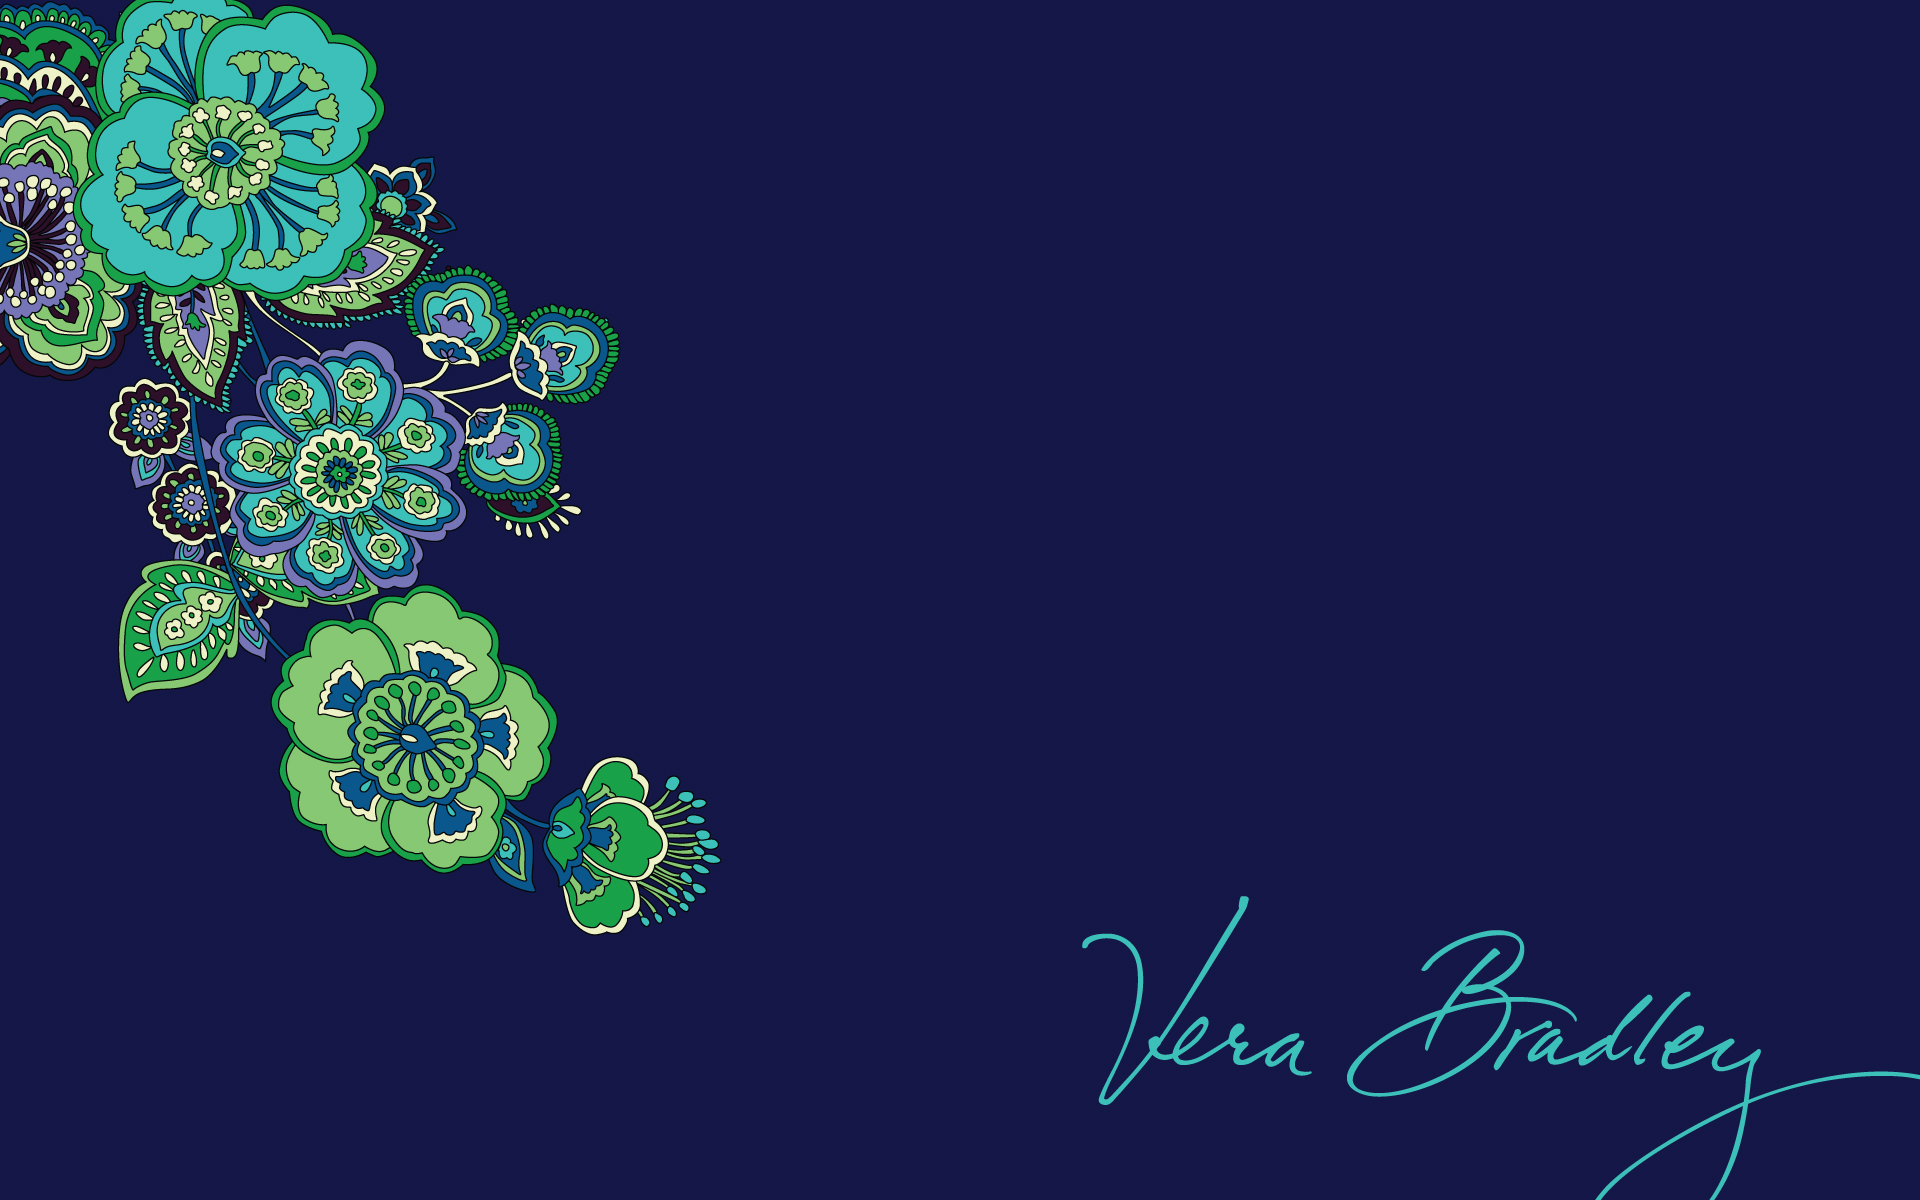 Vera Bradley images VB Wallpapers HD wallpaper and 1920x1200